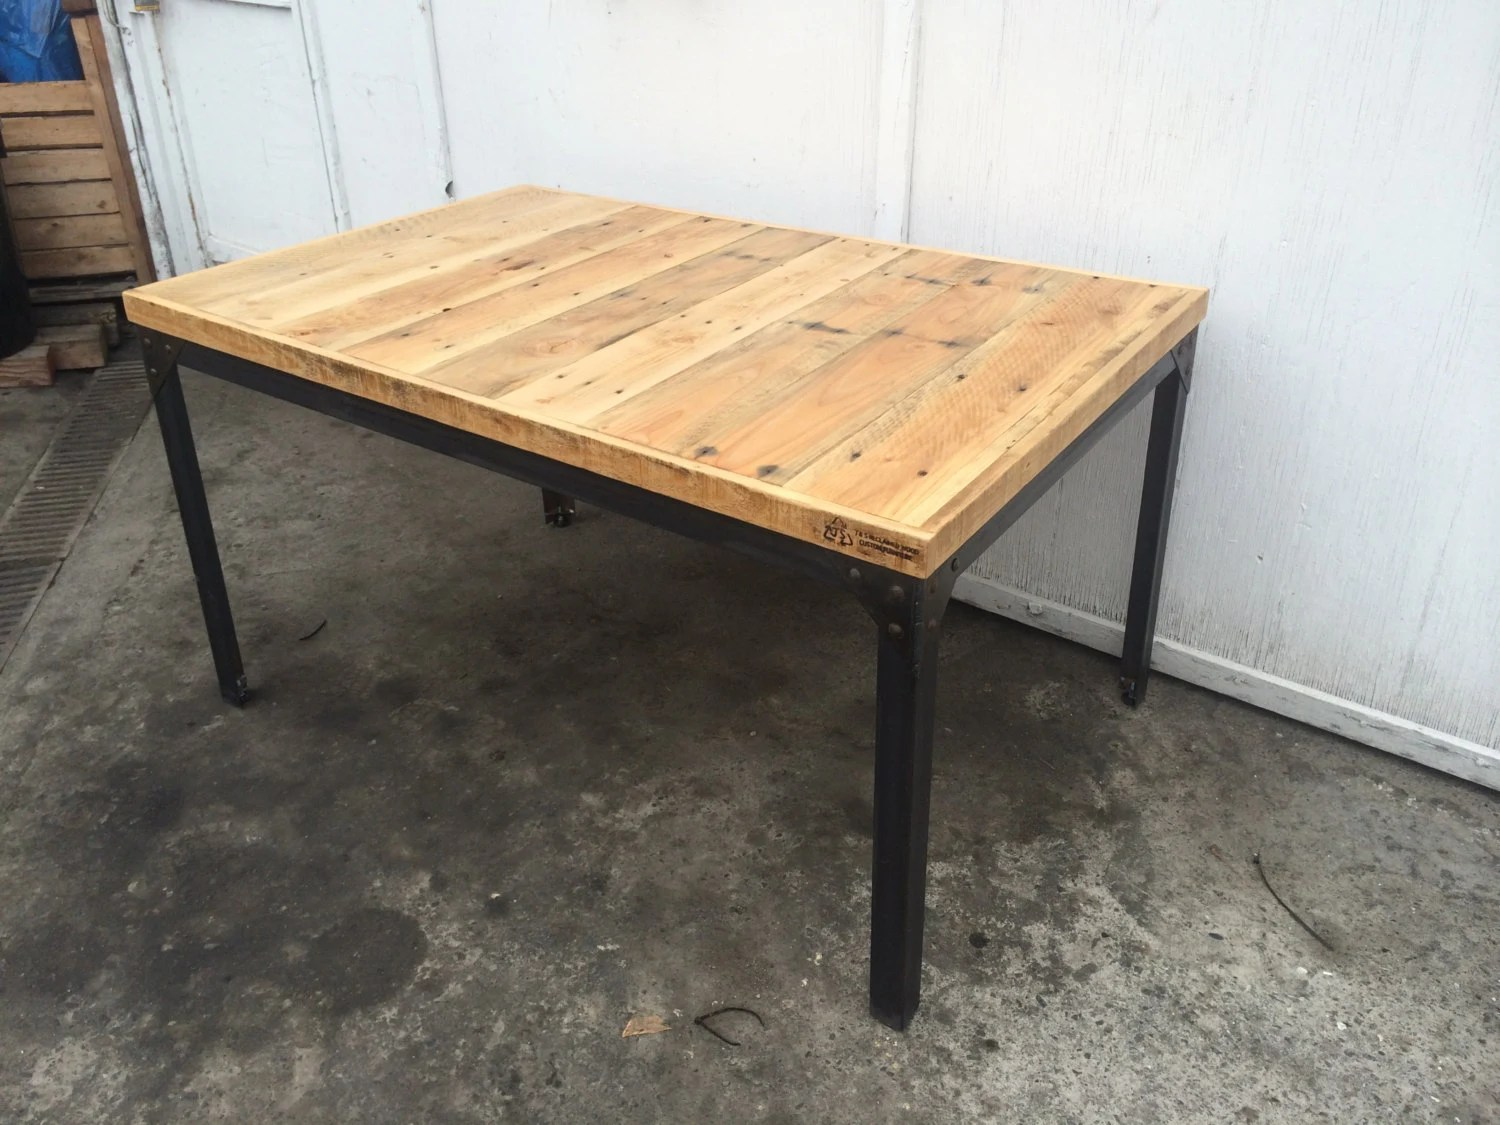 Salon De Jardin Ampm Pine Pallet Wood Dining Table With Hand Welded Steel Base With